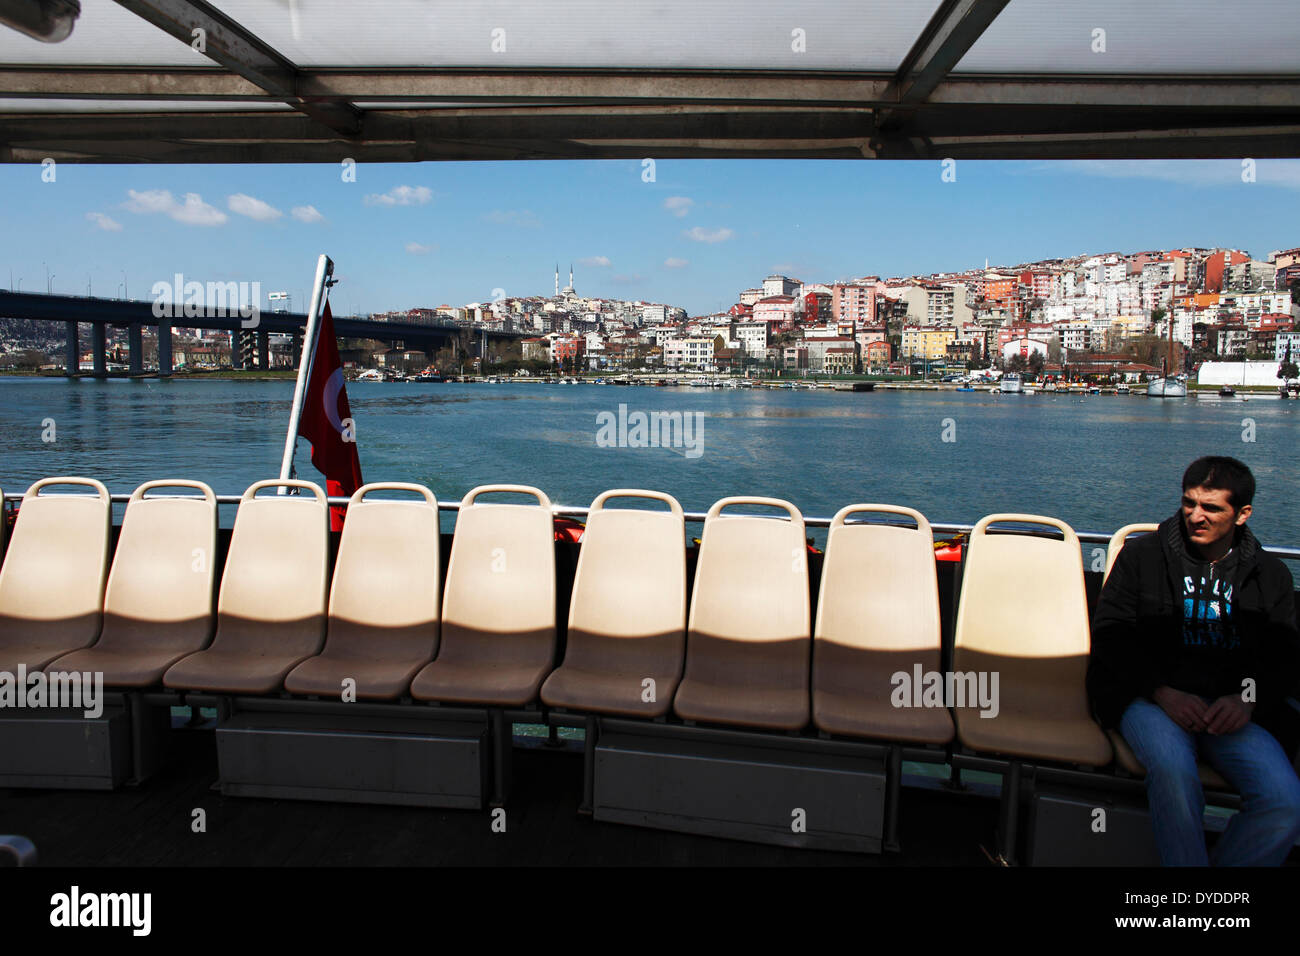 A man inside a ferry boat on the Golden Horn. - Stock Image